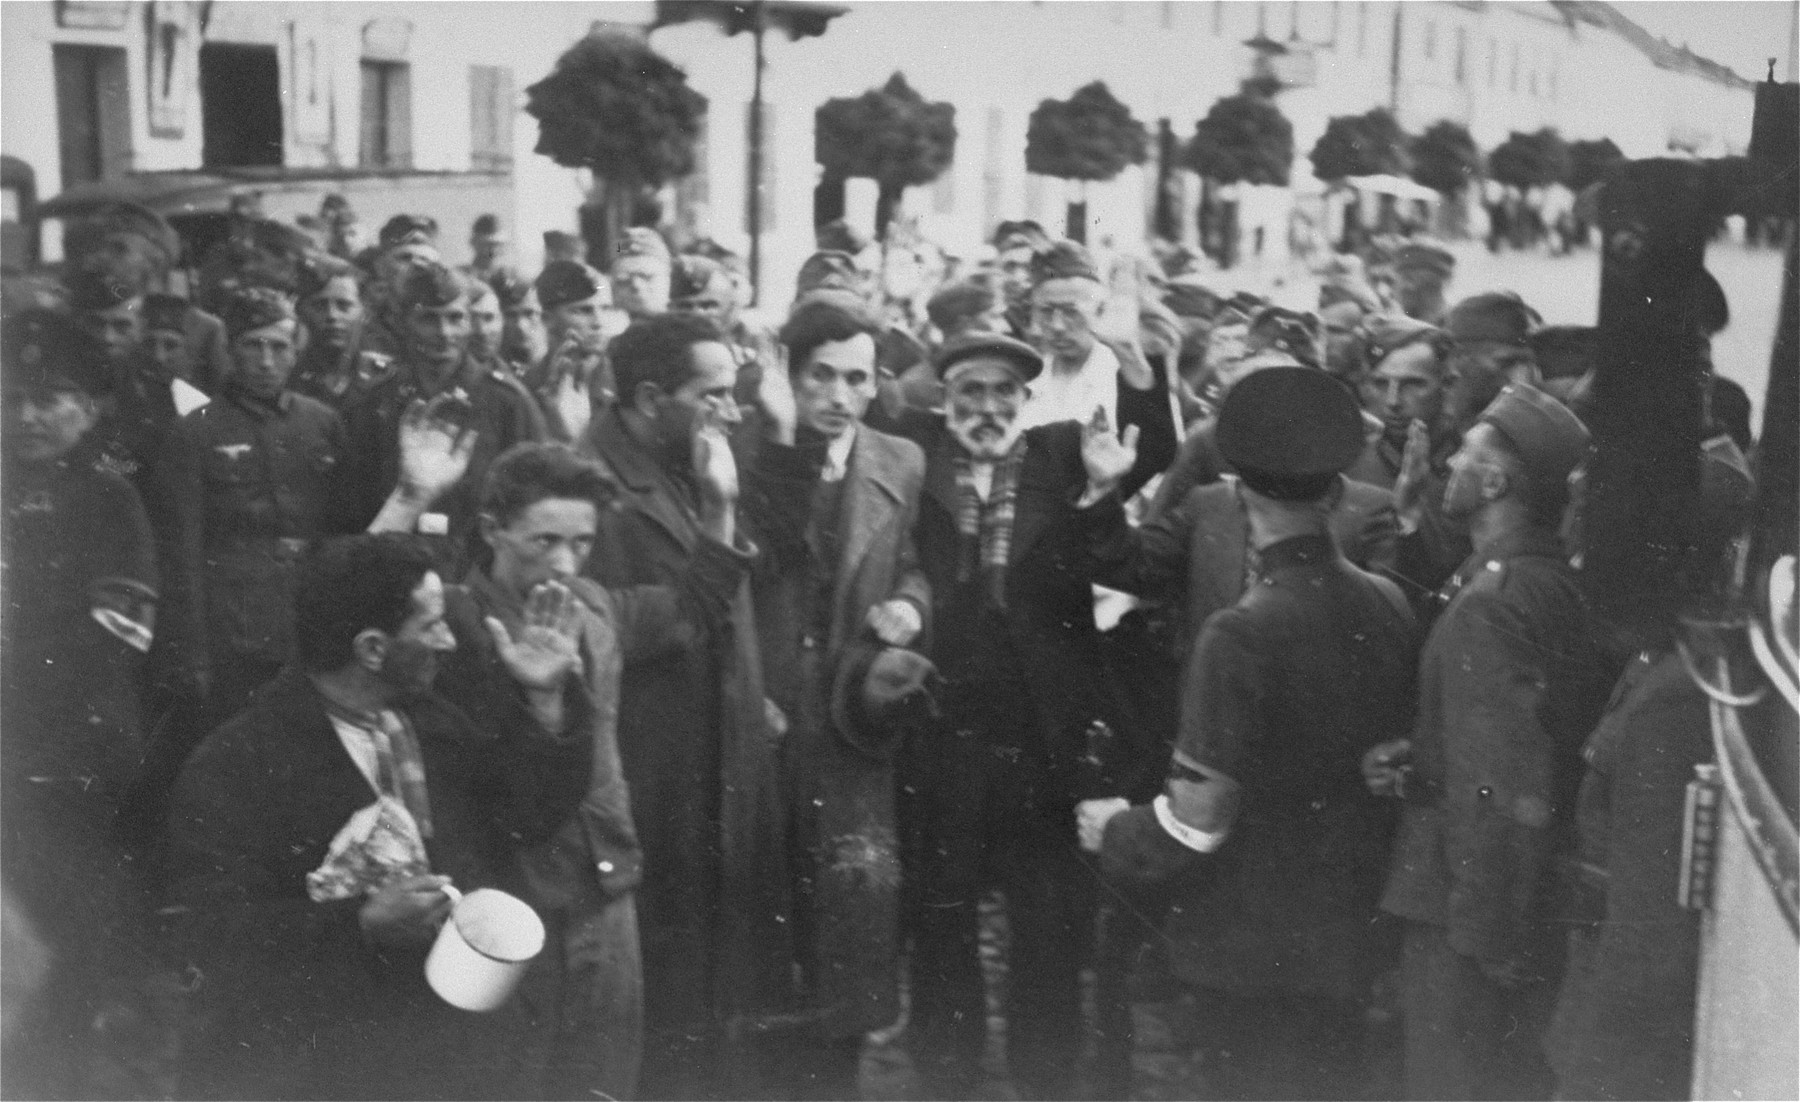 German soldiers surround a group of Jewish men who stand with their hands up in a public square in Bialystok.